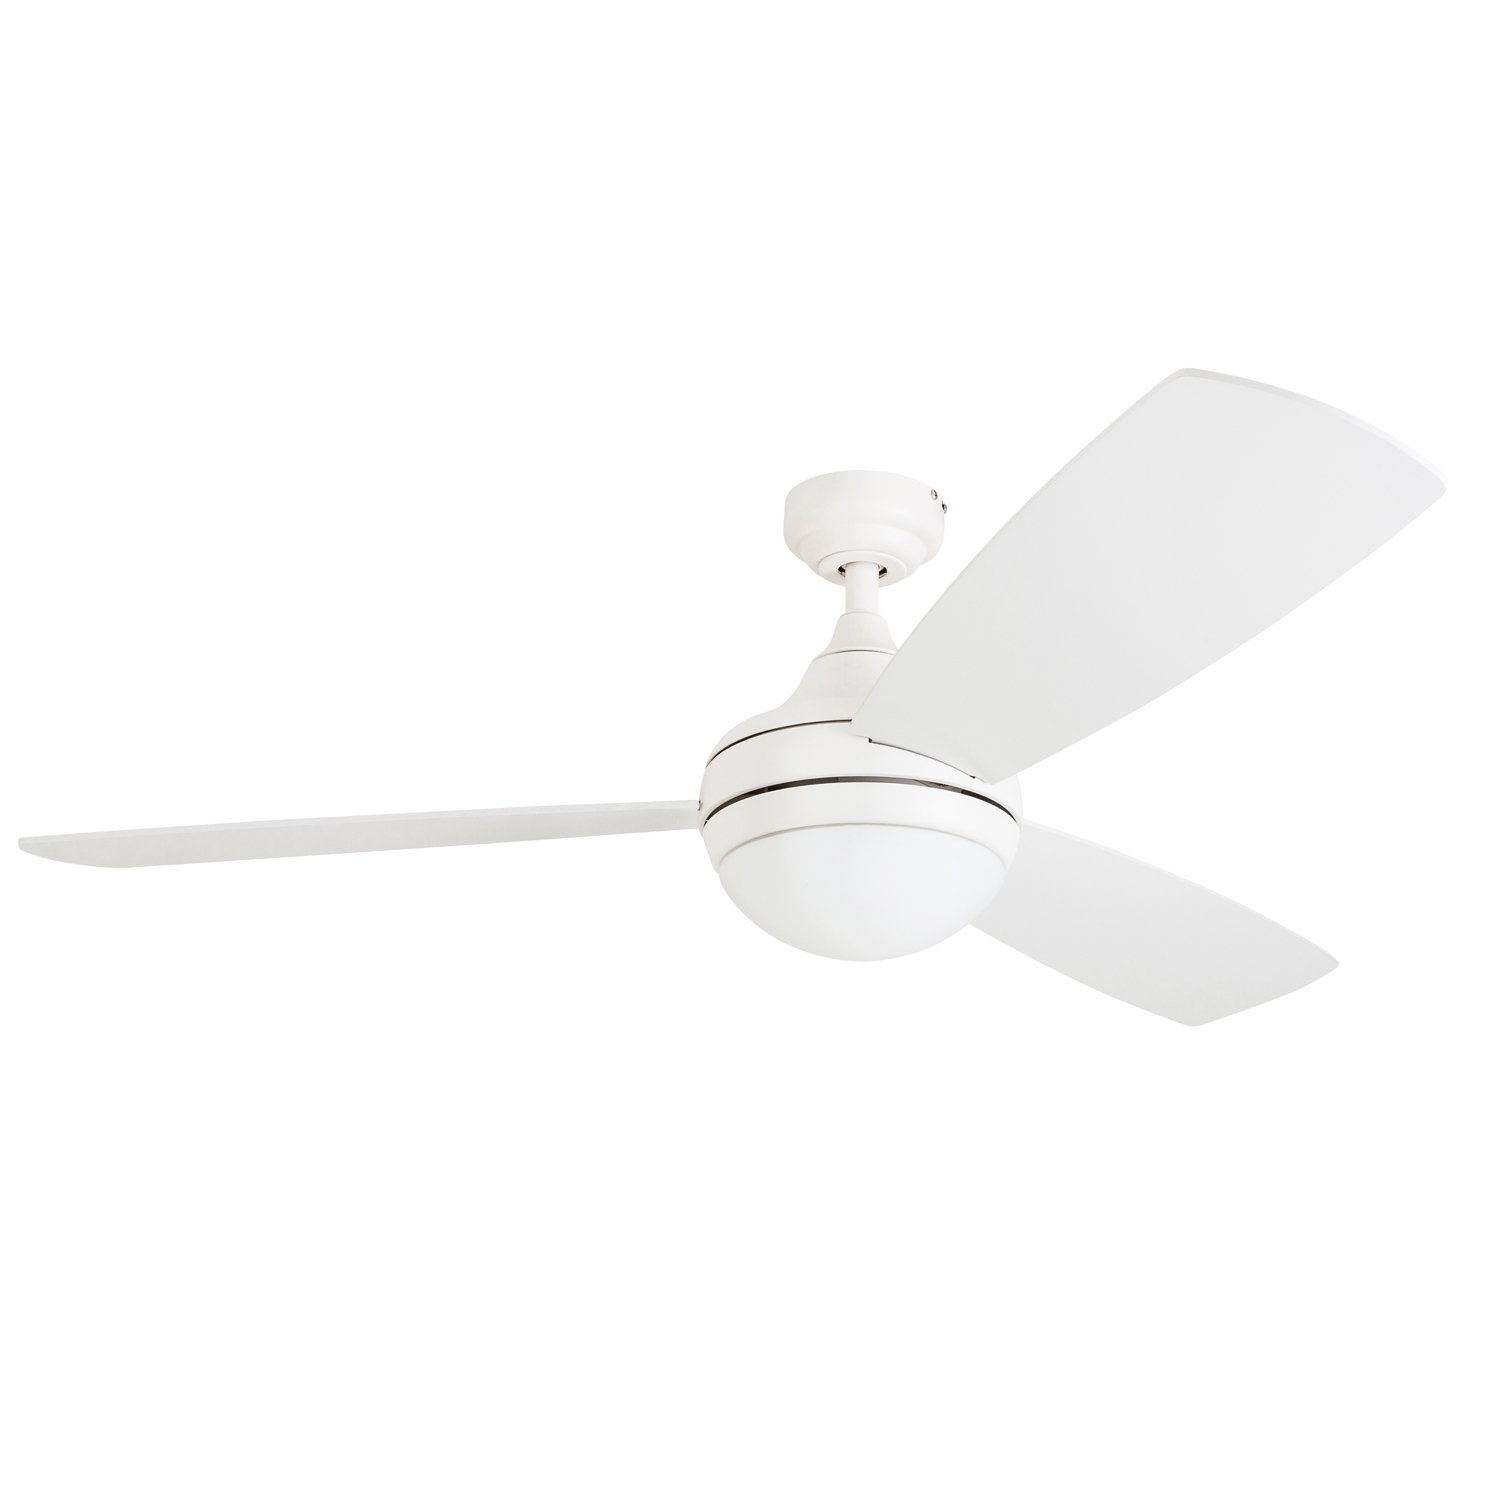 Prominence Home 80034-01 Calico Modern/Contemporary LED Ceiling Fan with Remote Control, 52 inches, Energy Efficient, Cased White Integrated Light Kit, White